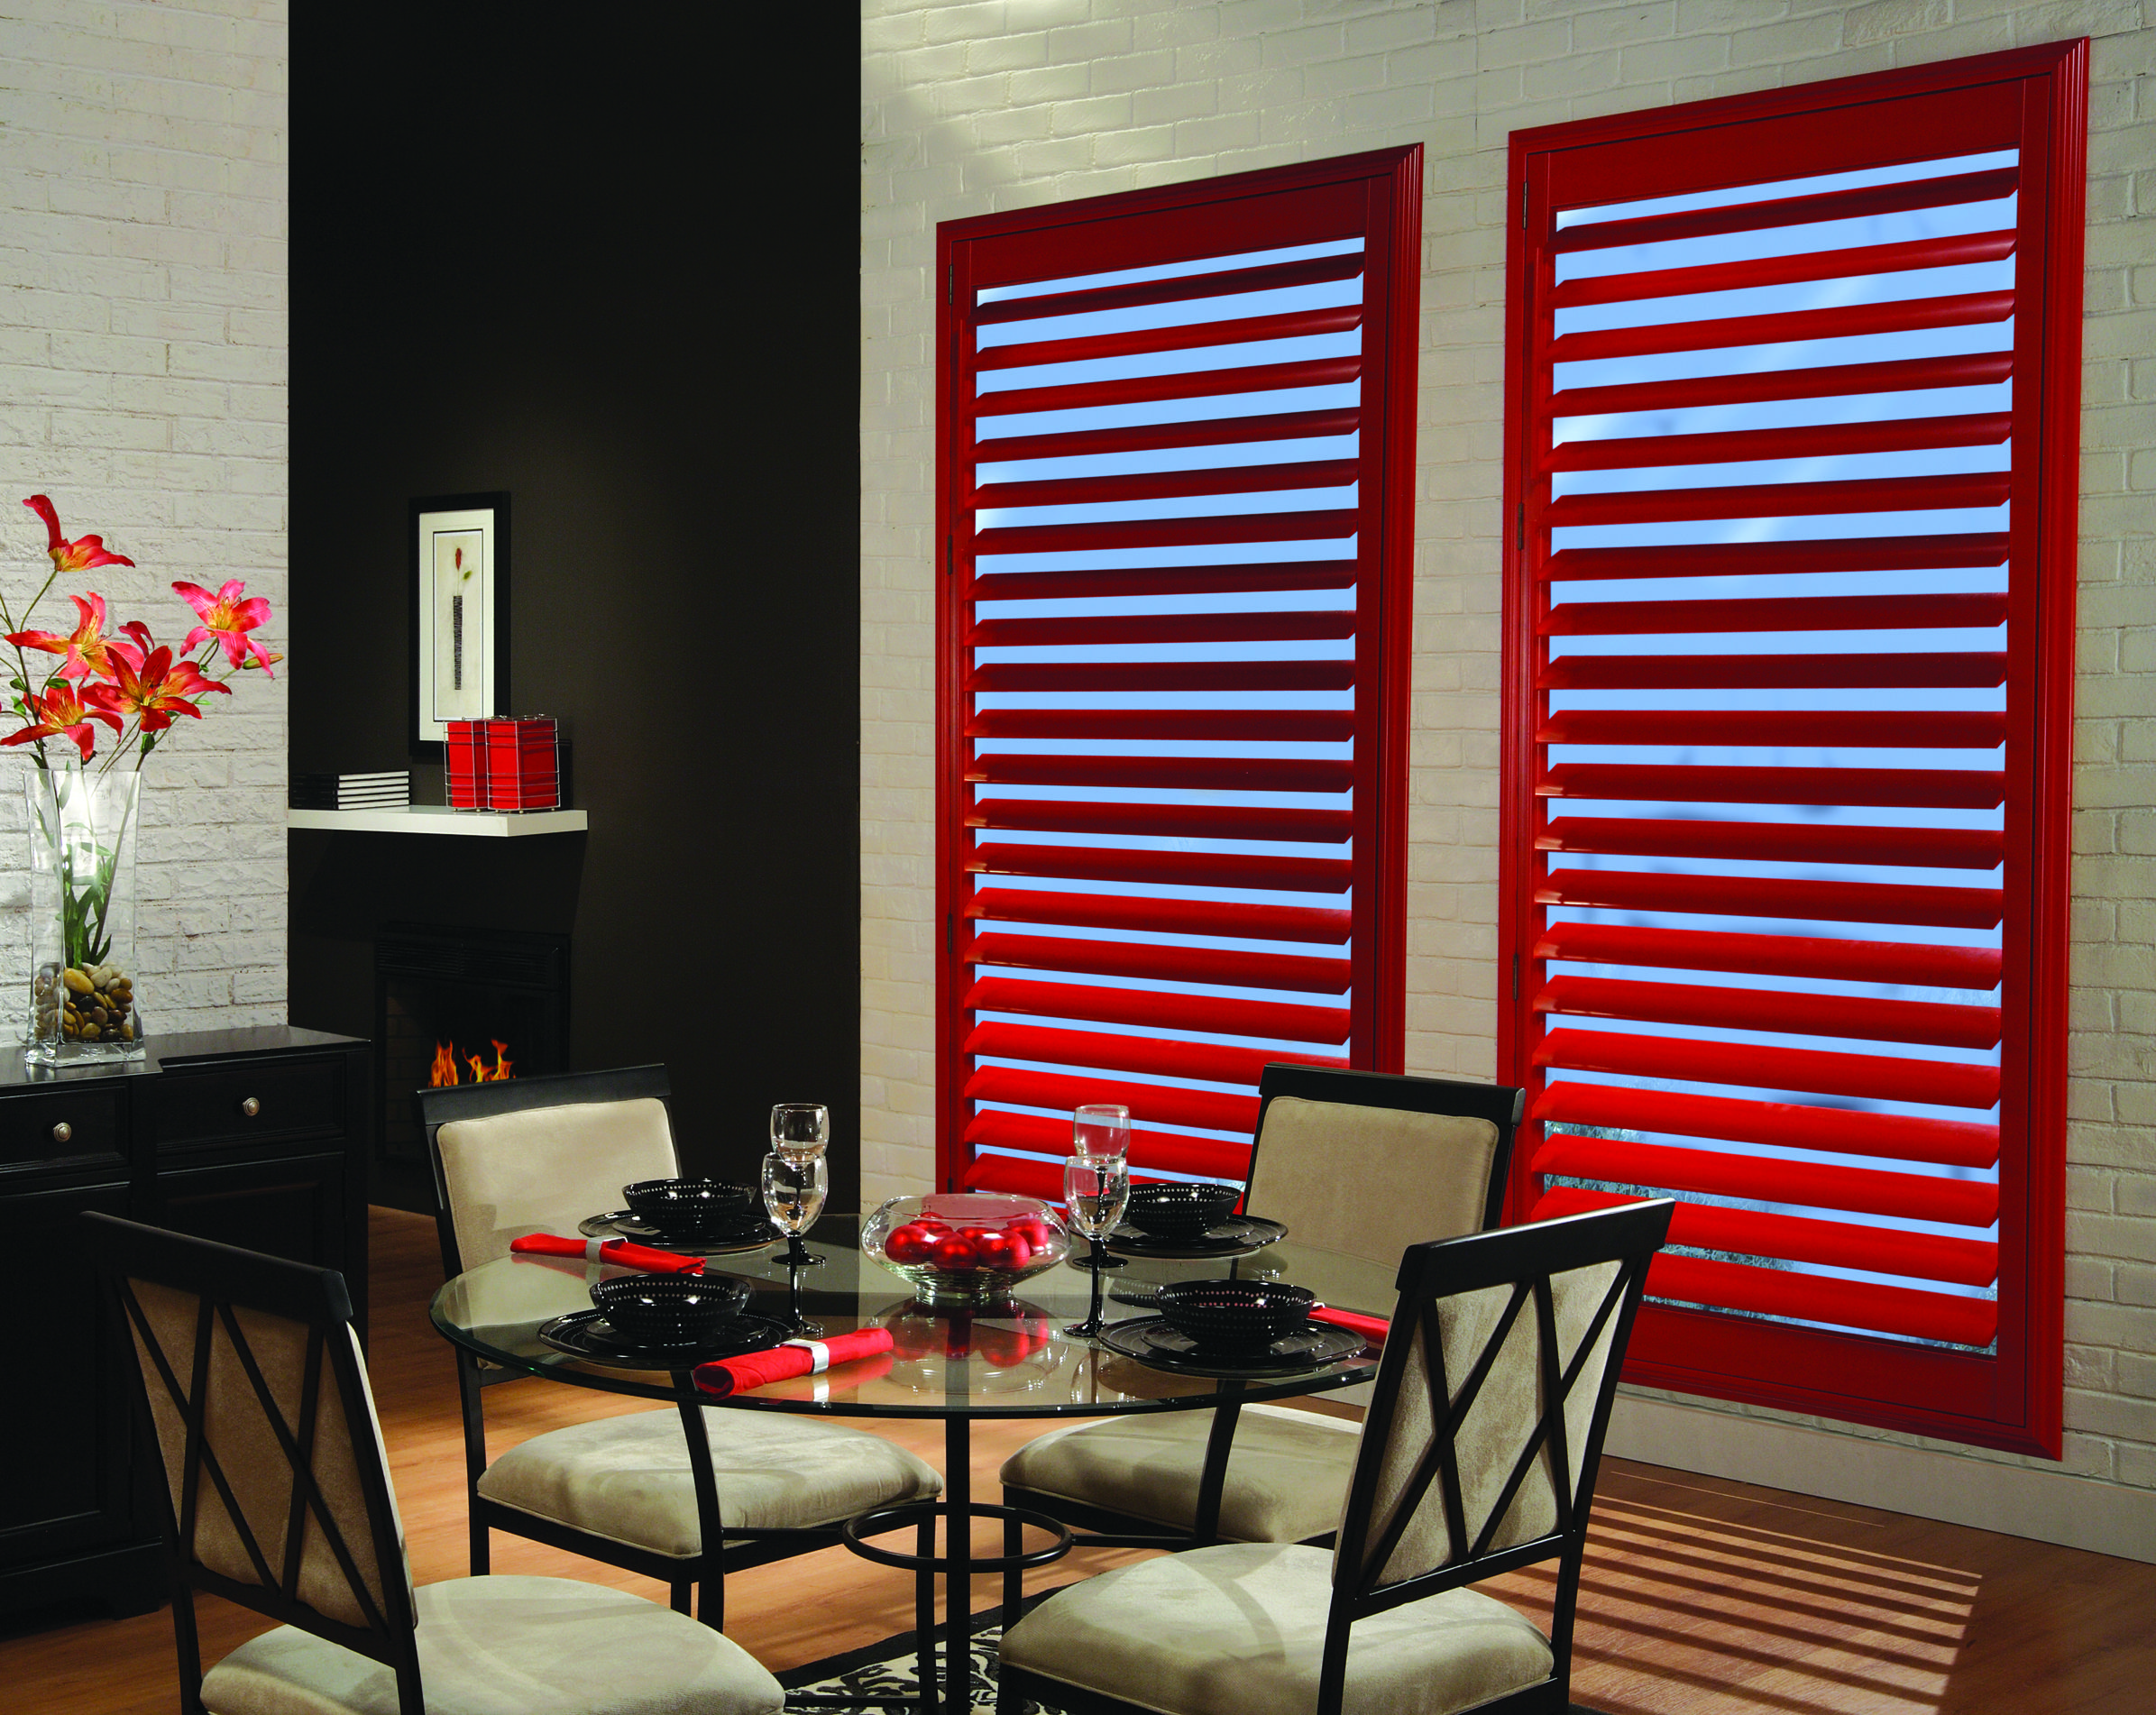 composite cover shutters ford and panel interior sill painted hdr decorative page with moulding portfolio window treatments